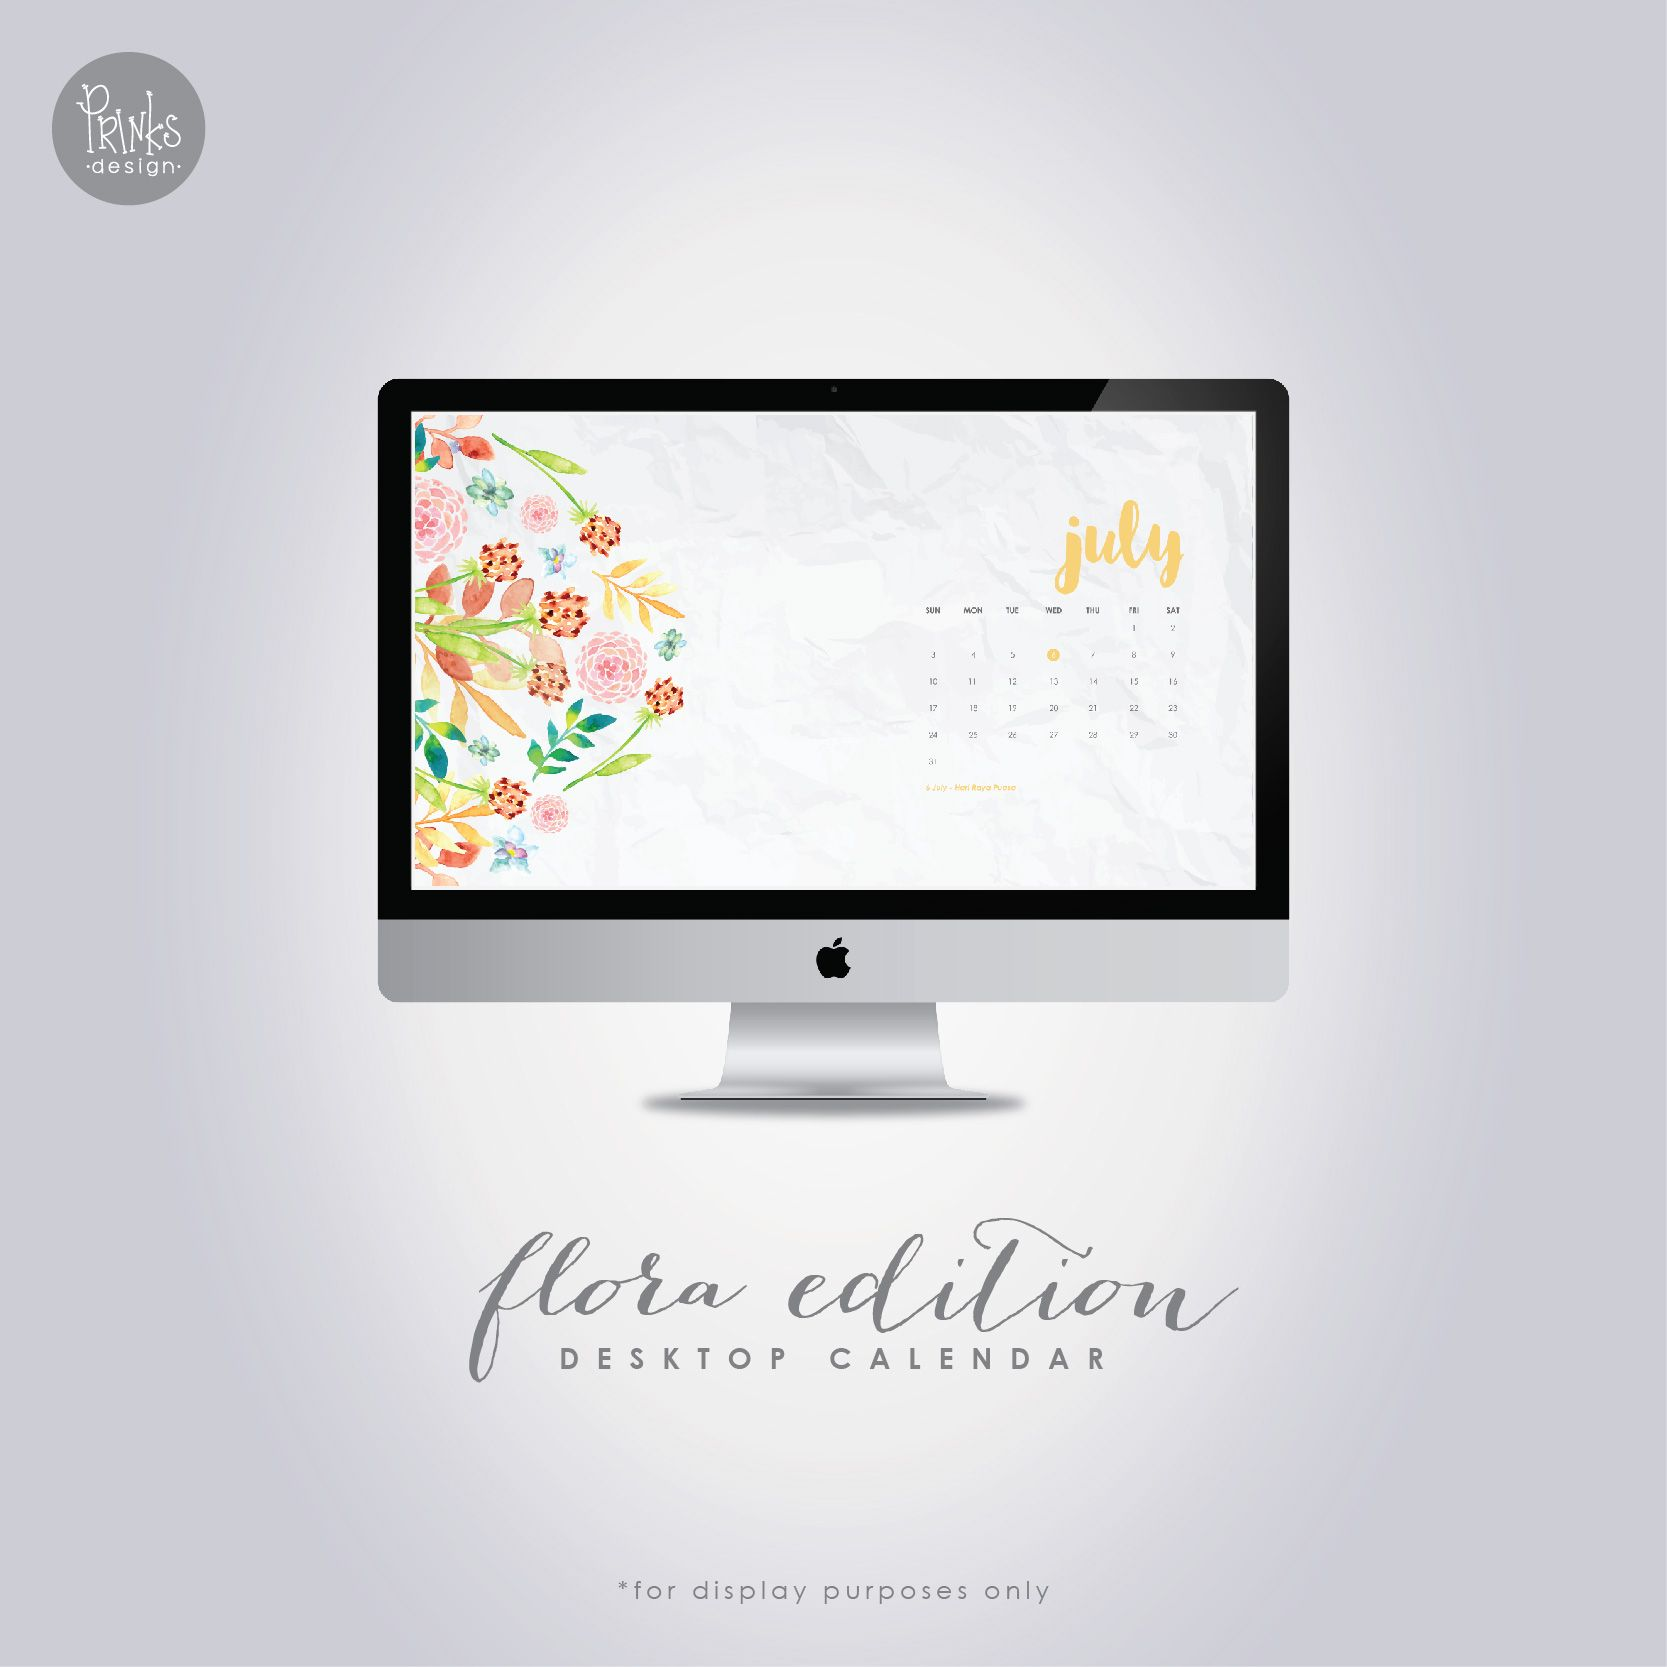 Calendar Wallpaper Originals : July desktop calendar pinterest